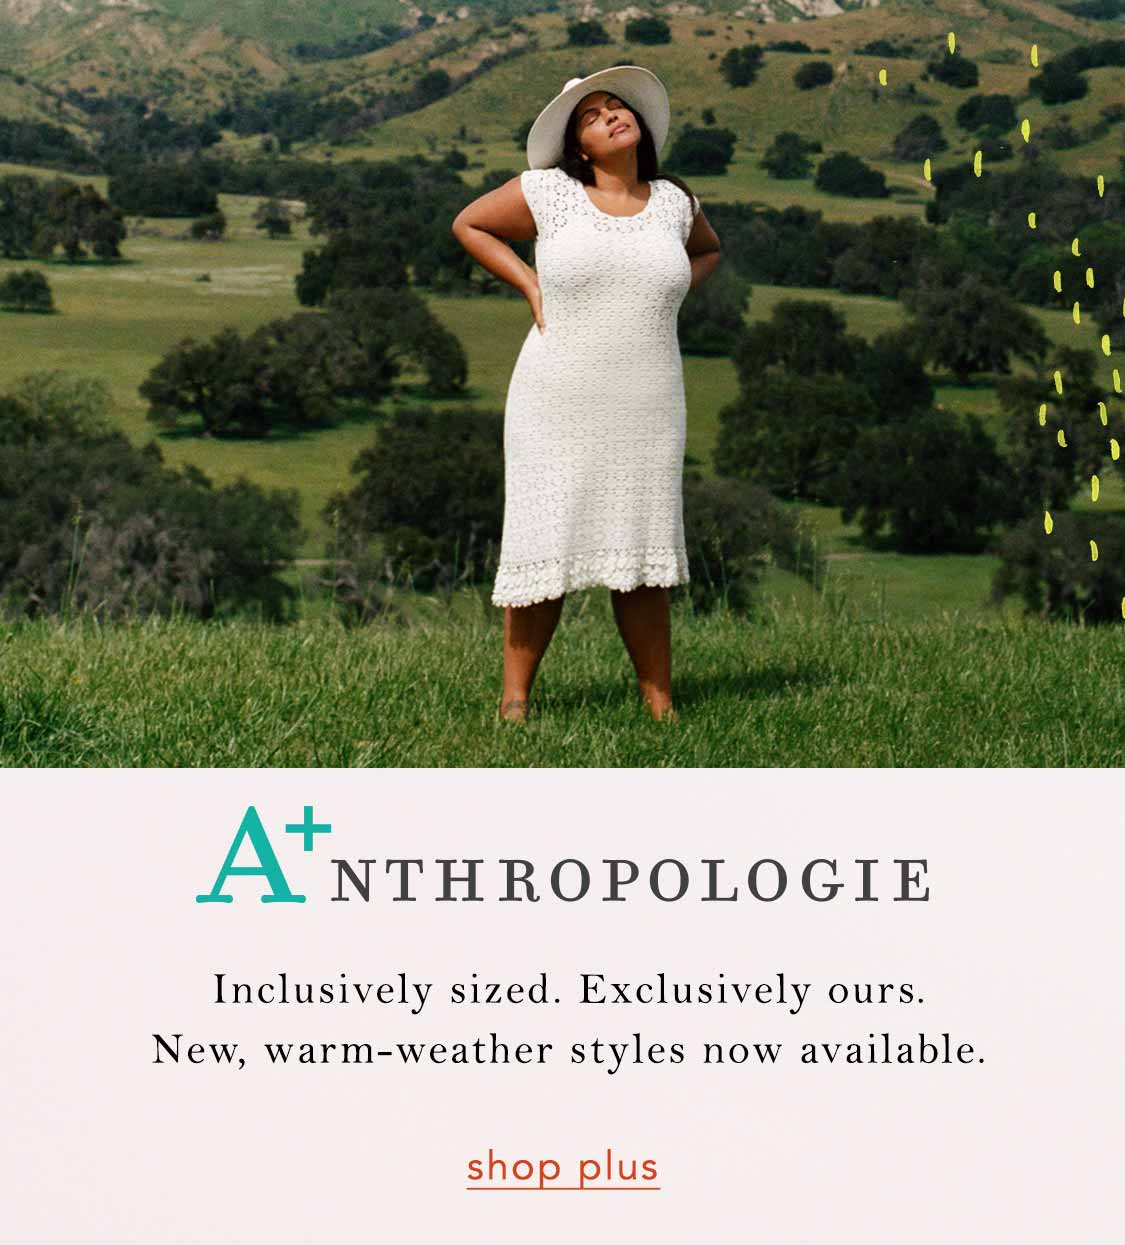 eea434c0e699 Anthropologie - Women's Clothing, Accessories & Home